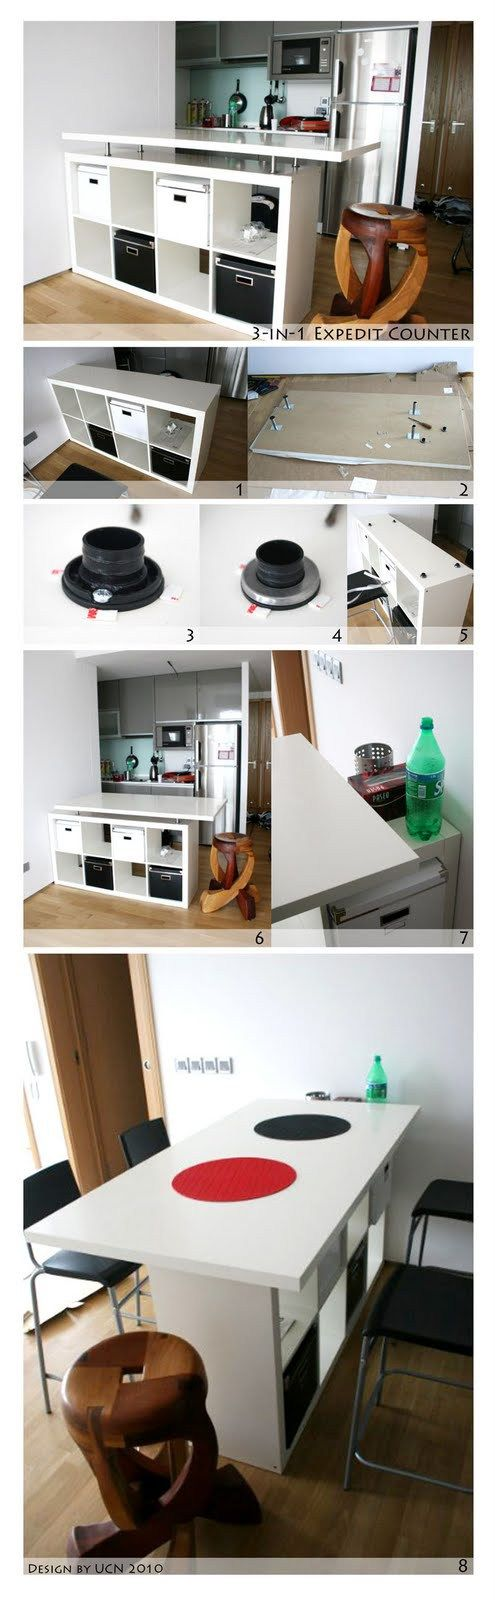 Materials: Expedit Shelf, Vika Amon Table Top, Capita Legs Description: So my wife and I were setting up our first home, and it's a small but beautiful white box of a place with a minimalist excuse of a kitchen along one wall of the living room. We figured we needed some sort of dining table, …